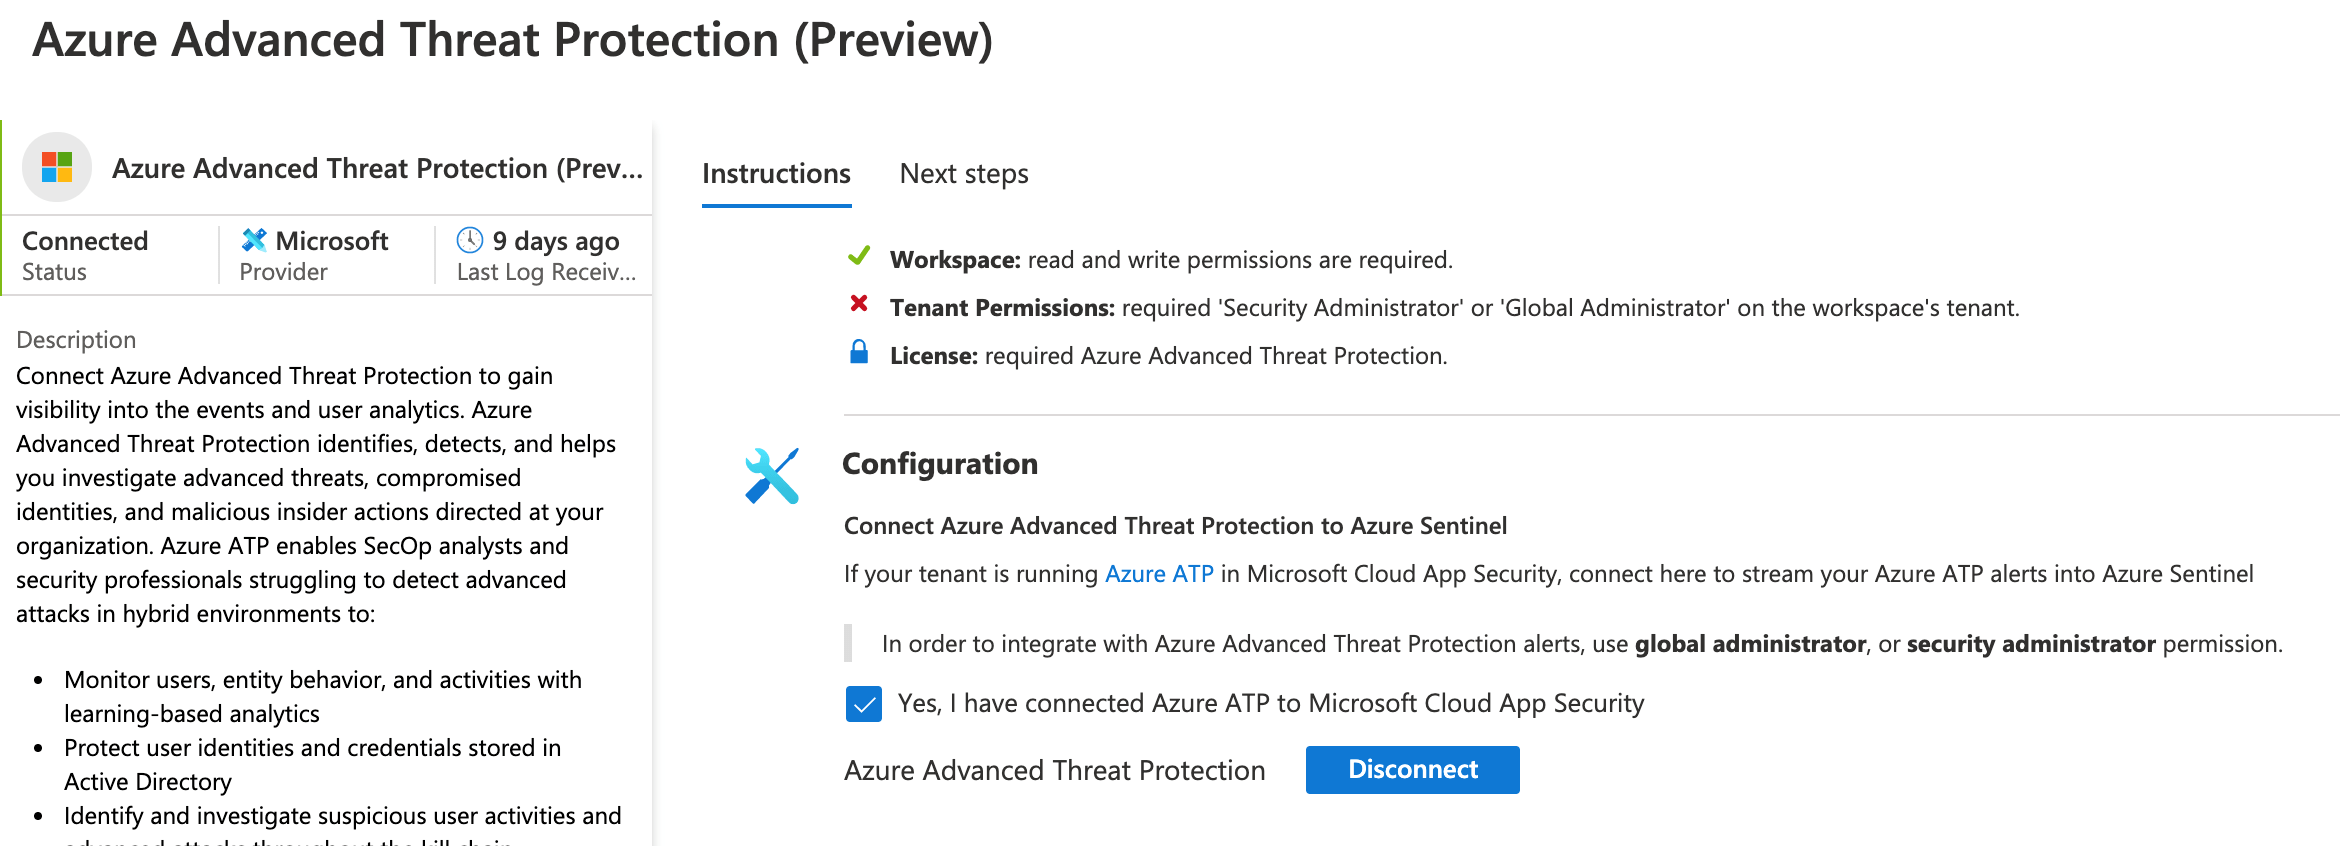 Azure Advanced Threat Protection Preview